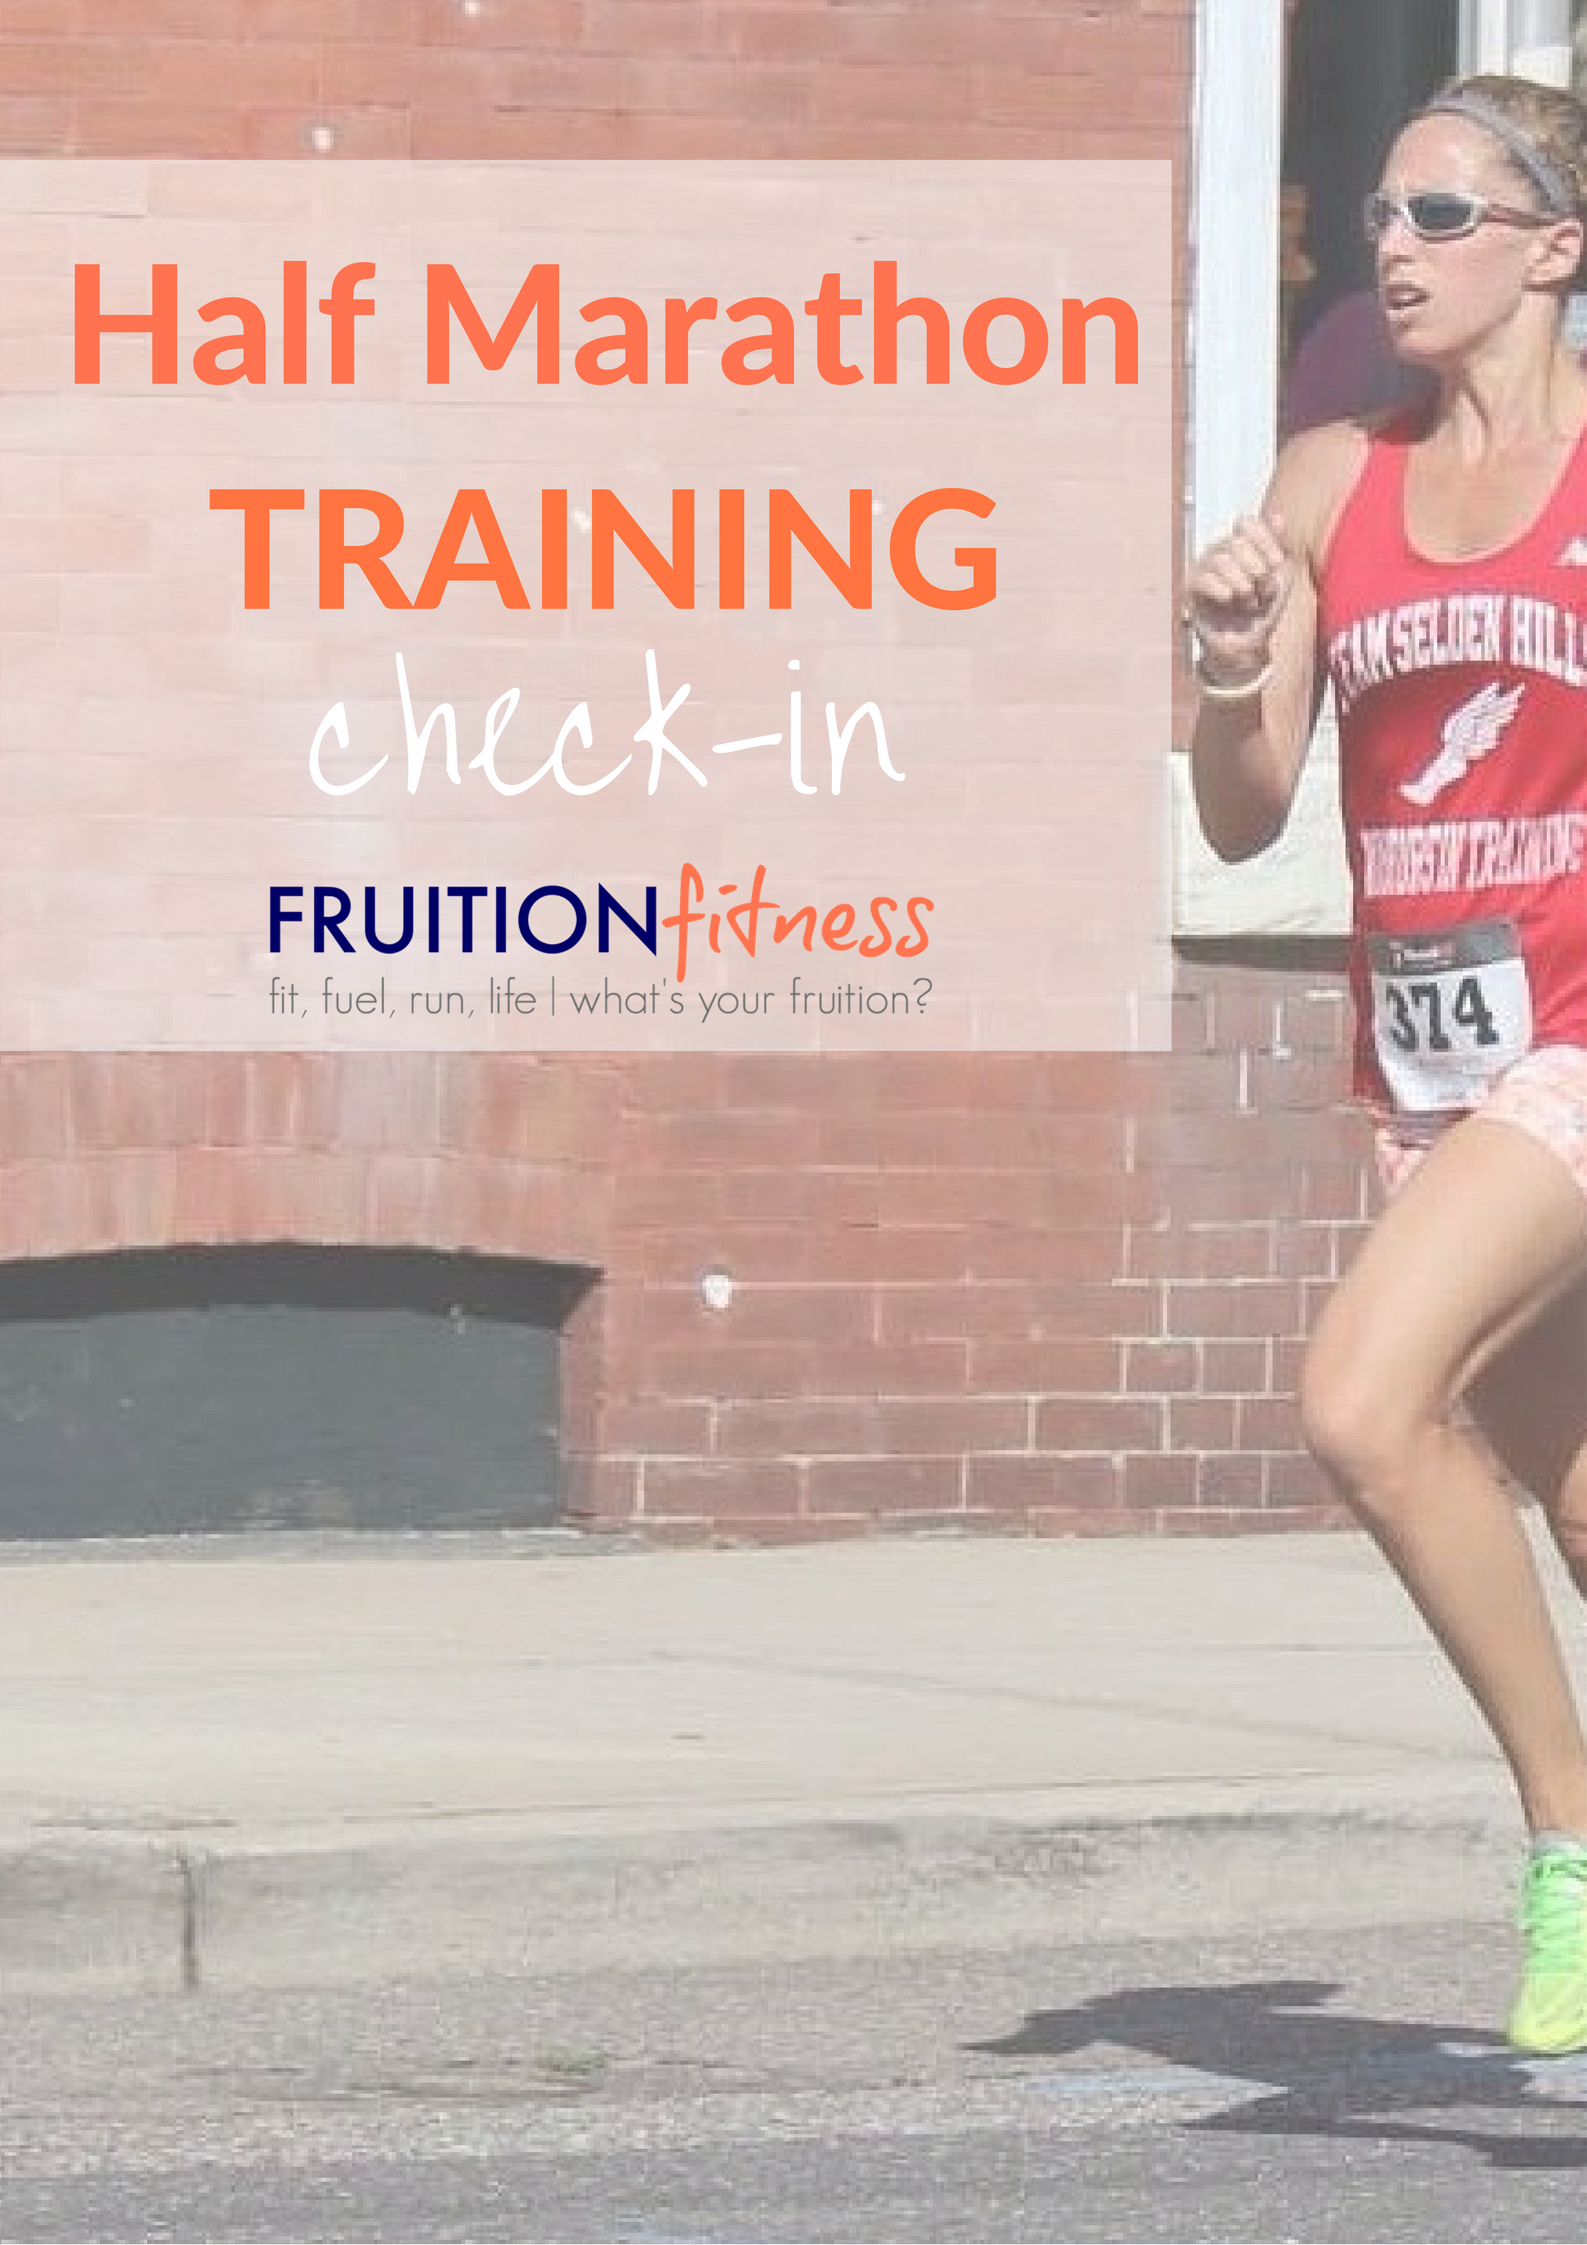 Half Marathon Training Check In (1)